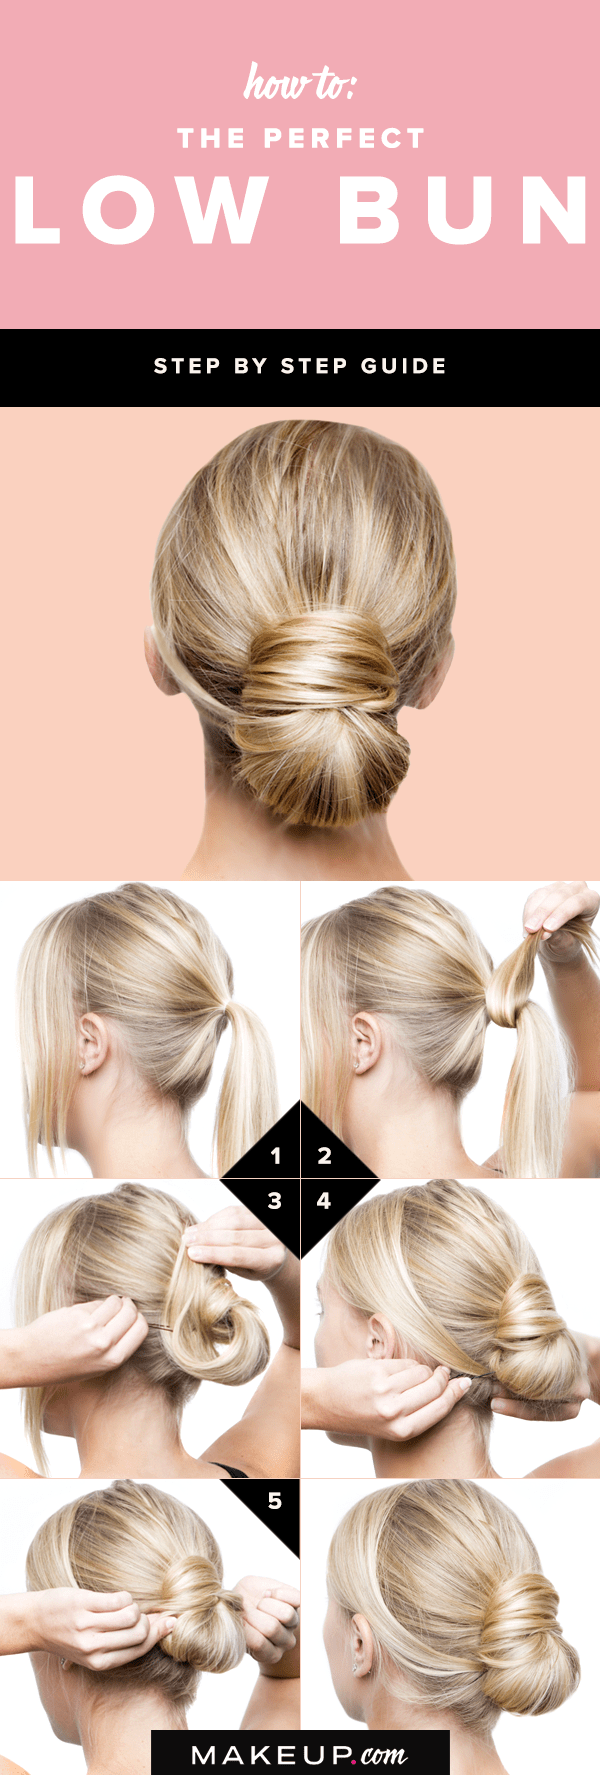 amazing ideas how to make simple but dynamic hairstyle that